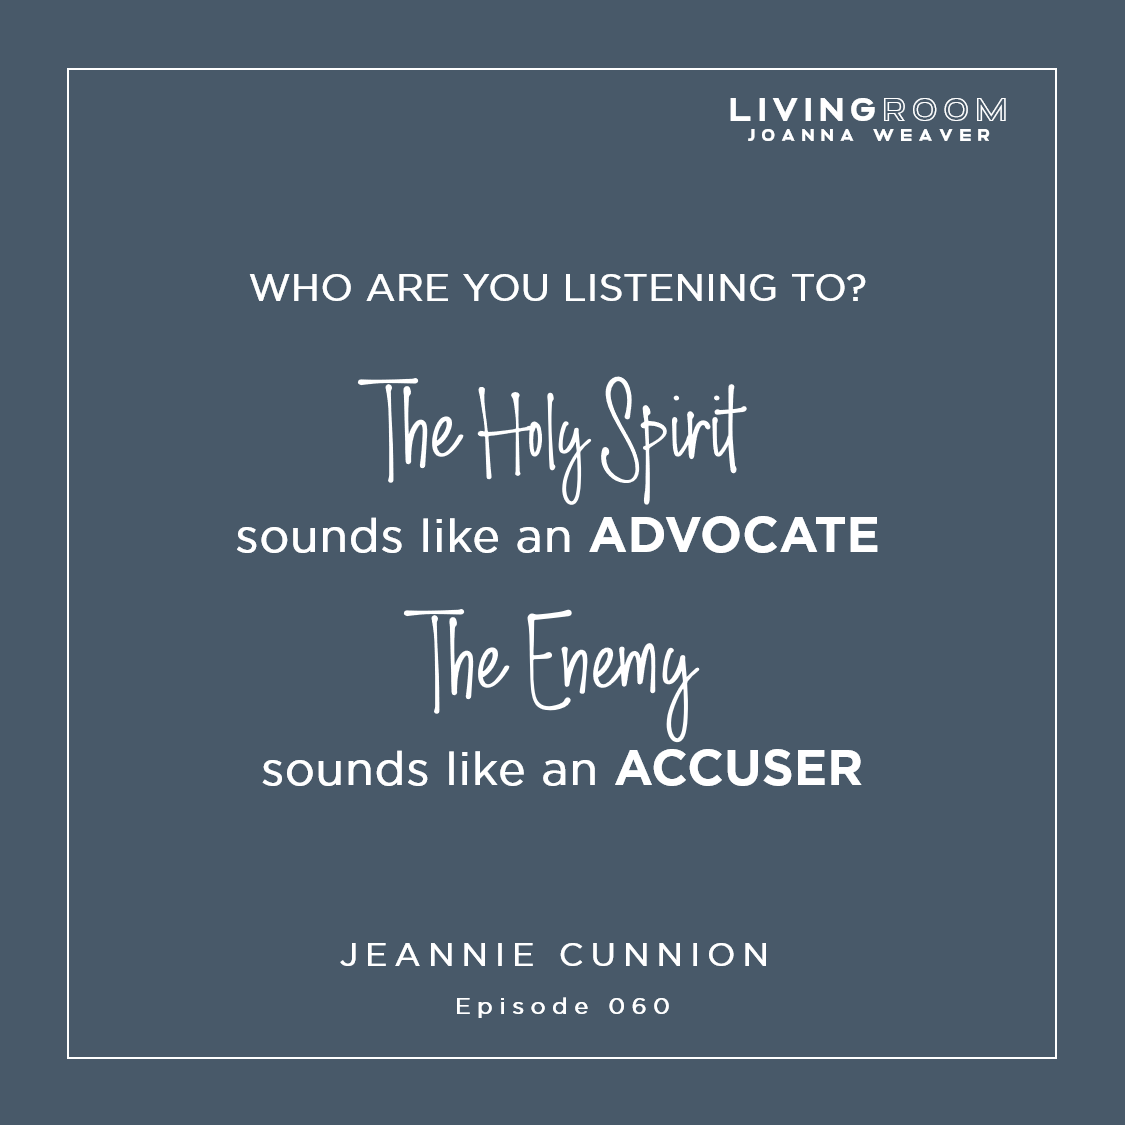 """""""The Holy Spirit sounds like an advocate. The Enemy sounds like an accuser"""" - Jeannie Cunnion - The Living Room Podcast - Episode 060"""